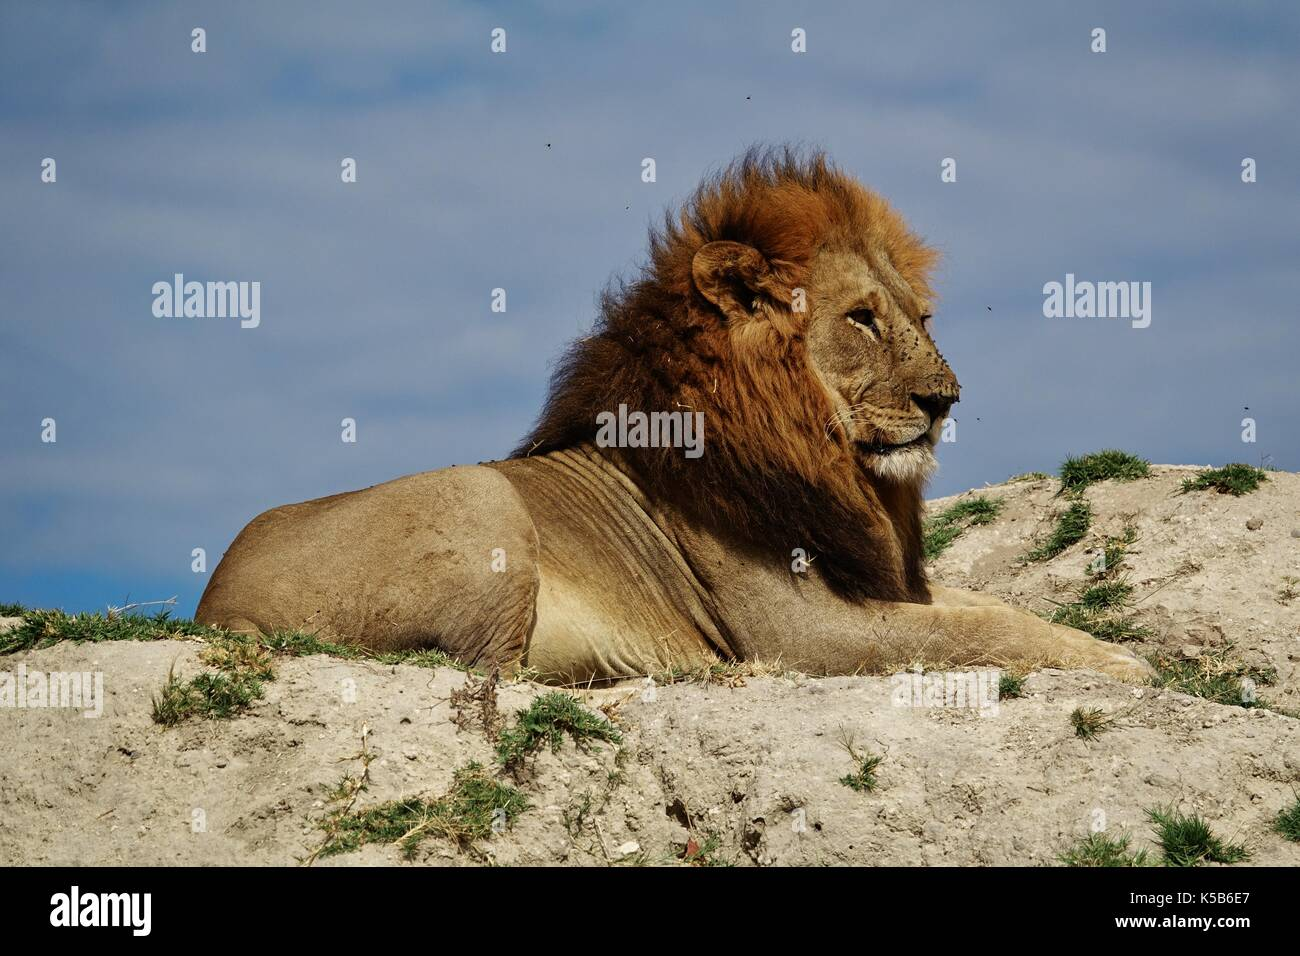 Big male lion sitting on hill - Stock Image